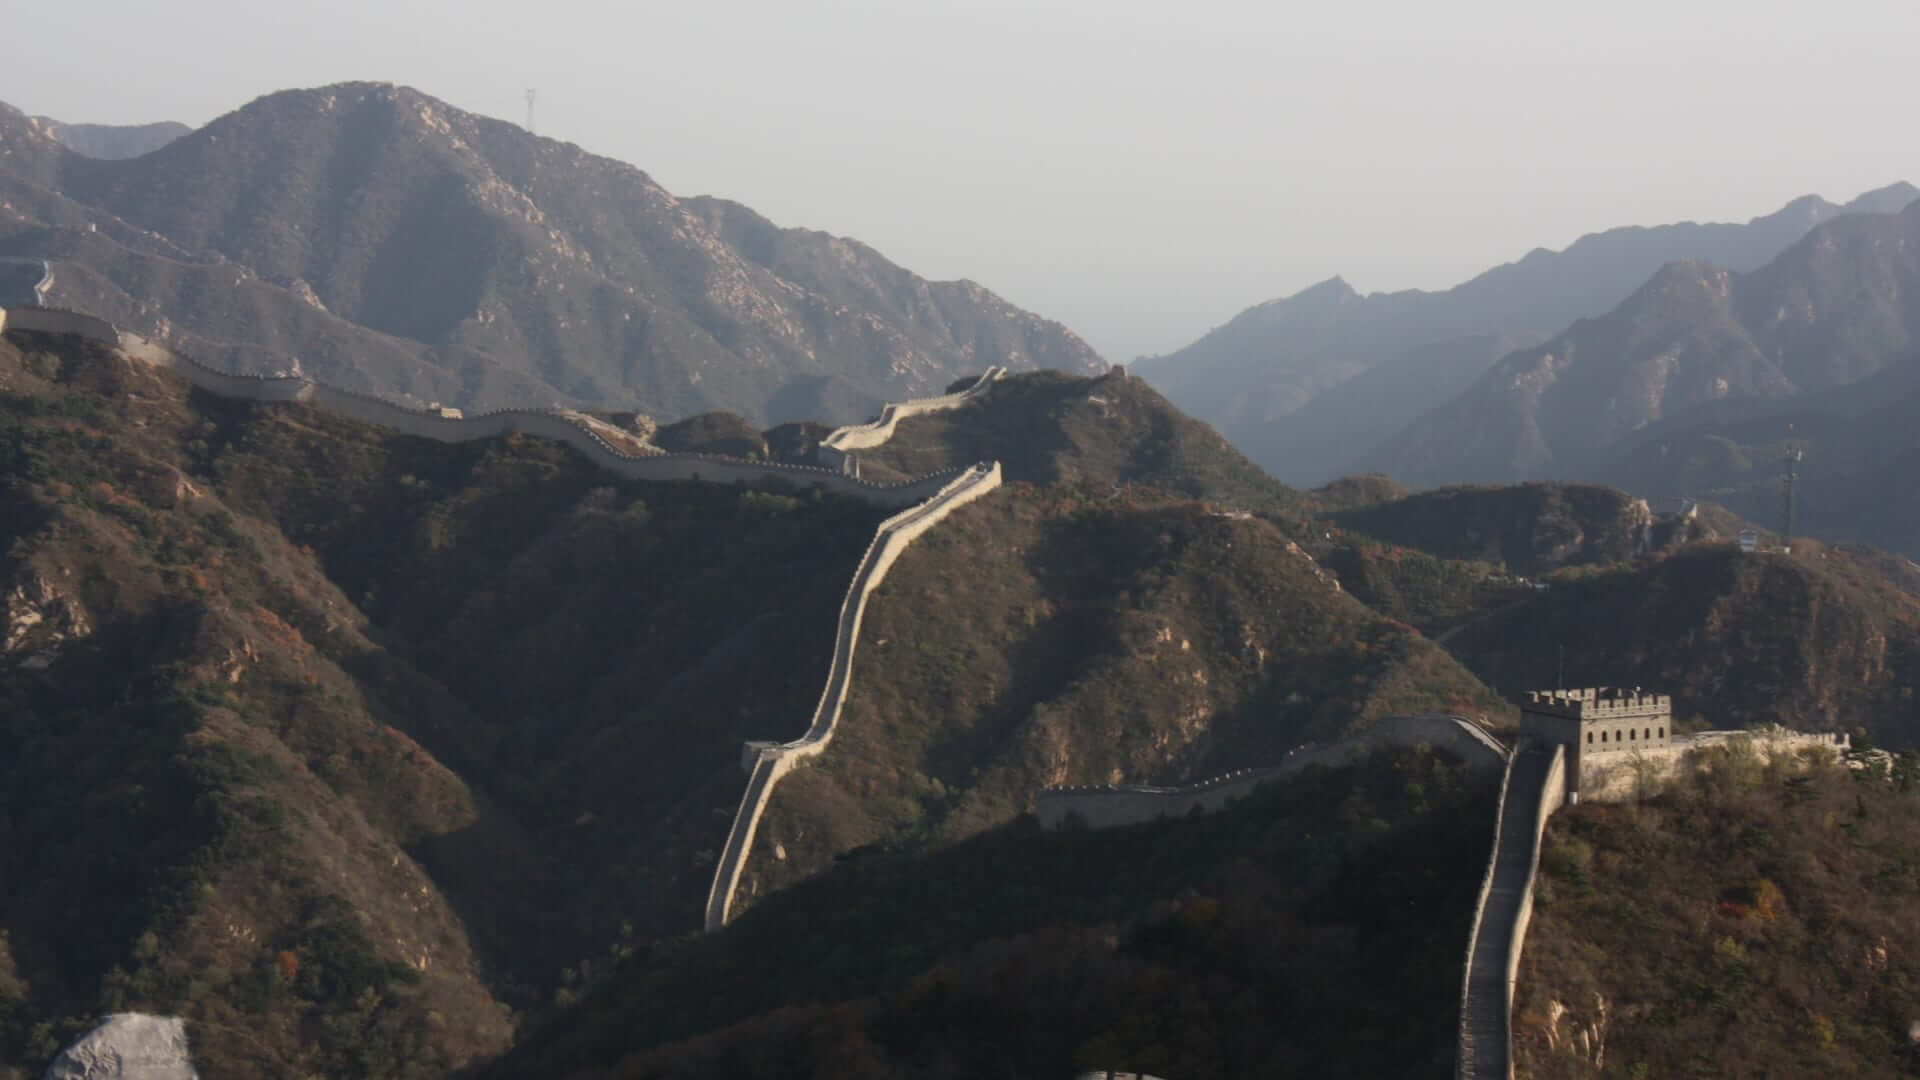 A great big wall across mountains in China.